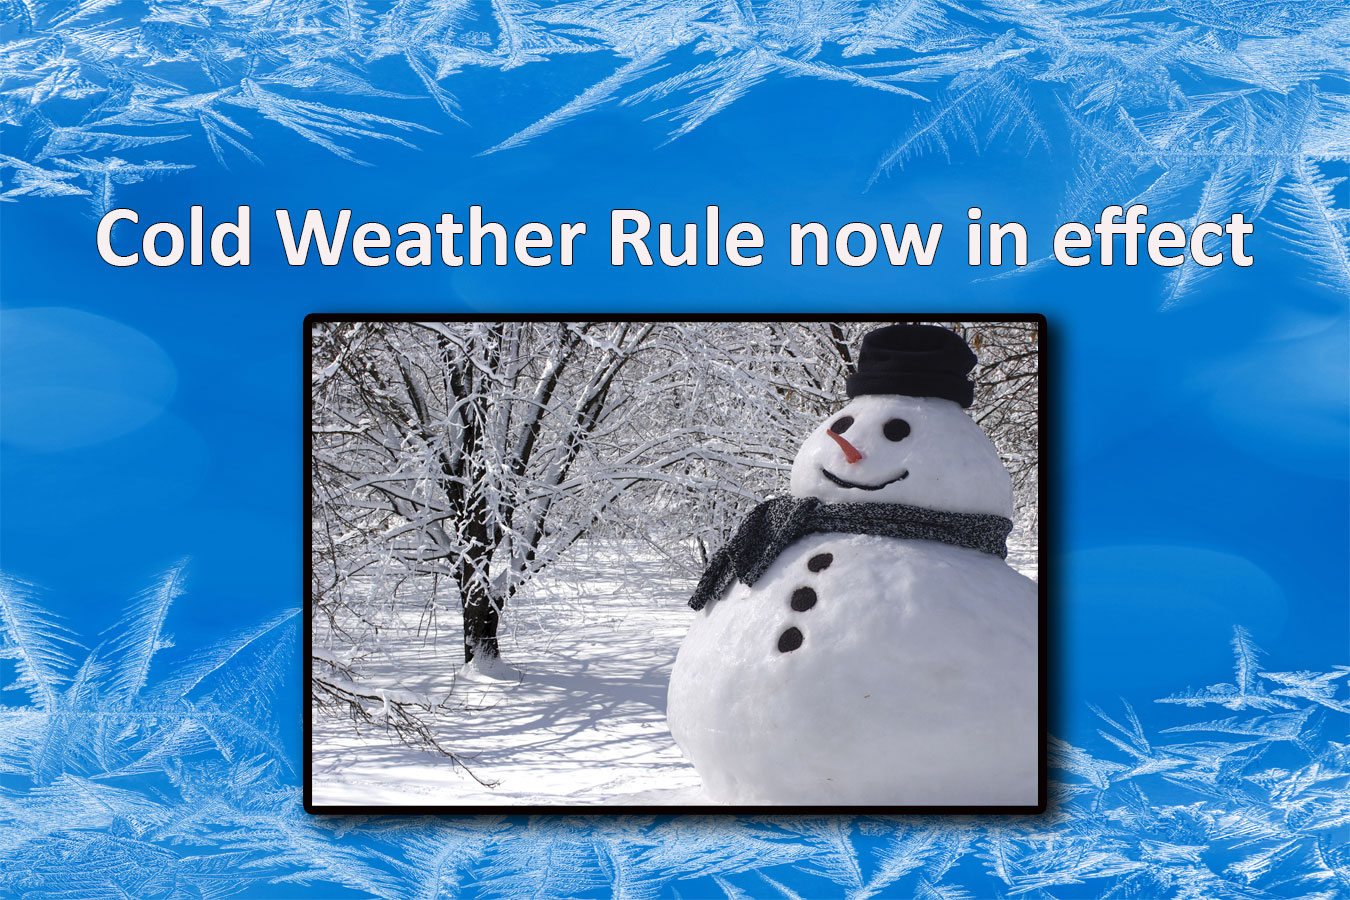 Cold weather rule graphic with snowman